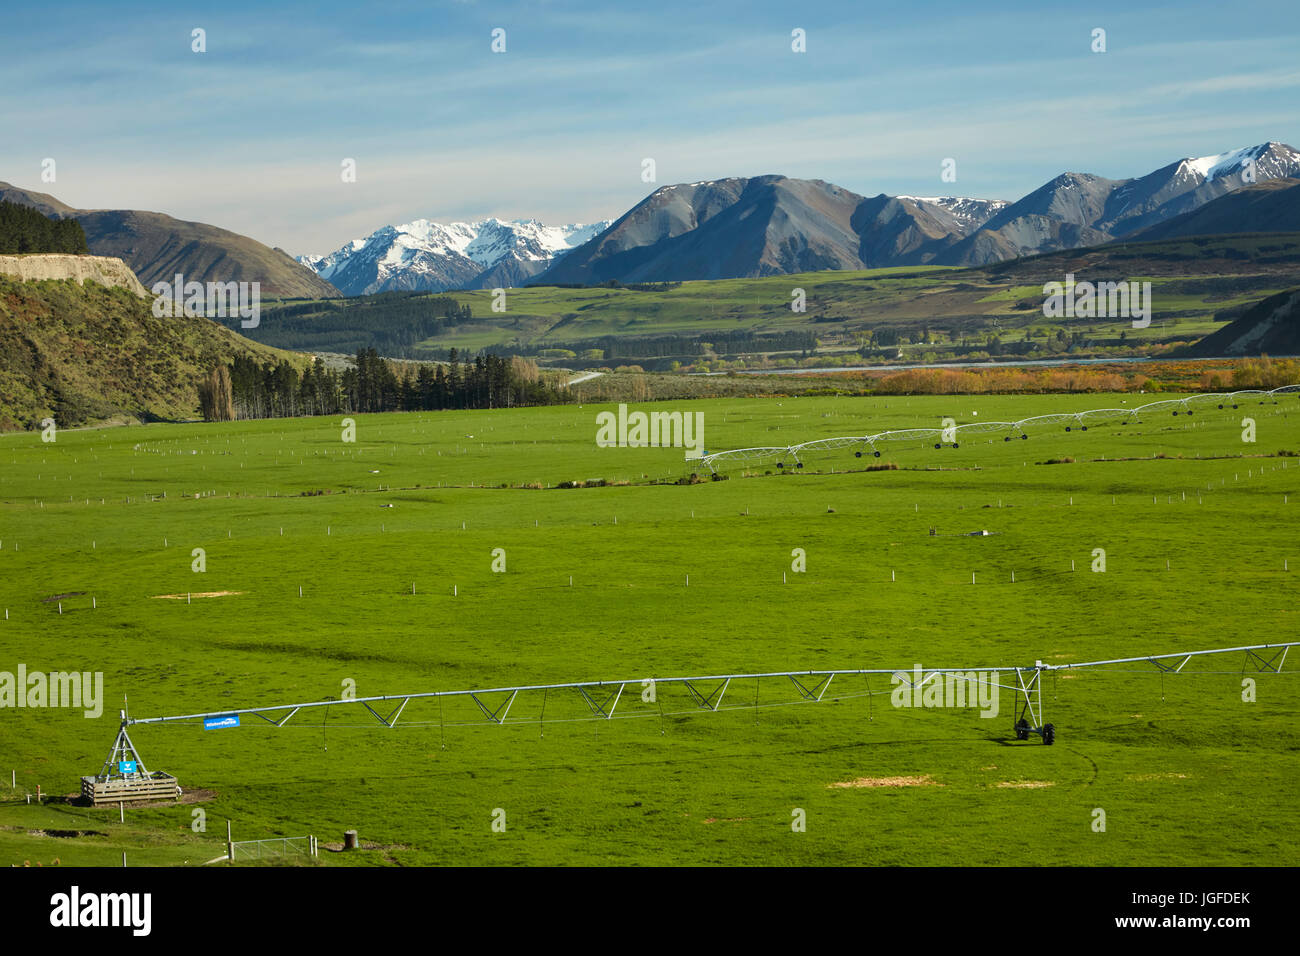 Centre pivot irrigators and farmland and Upper Rakaia River, Mid Canterbury, South Island, New Zealand - Stock Image